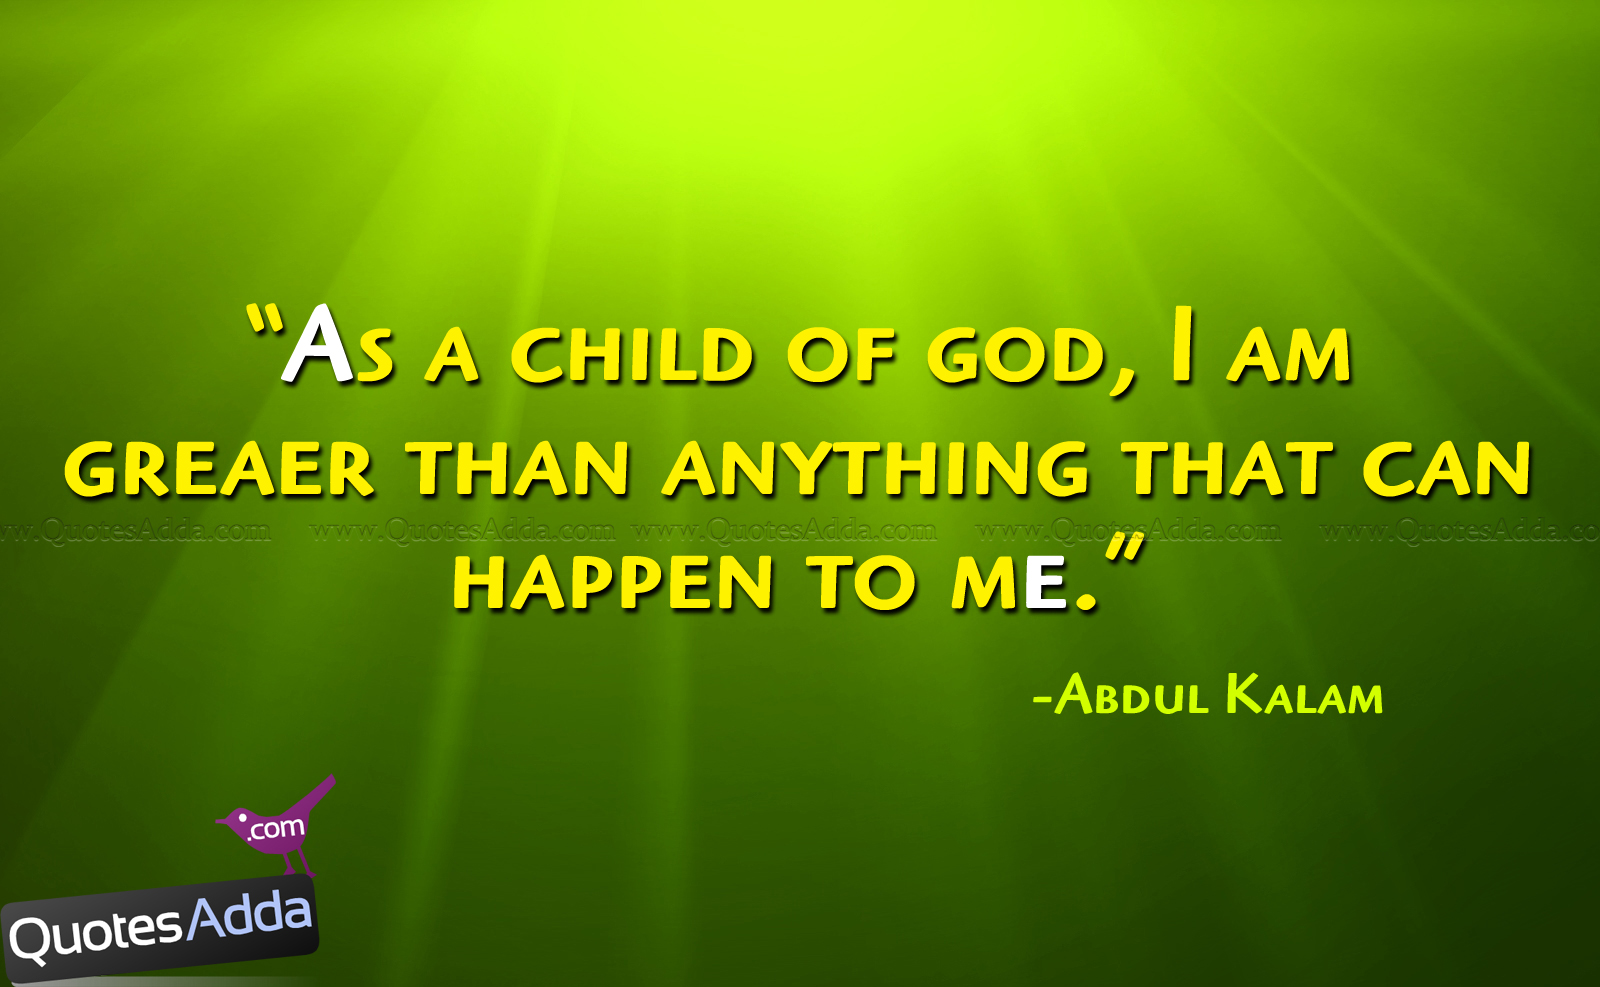 abdul kalam quotations telugu quotes